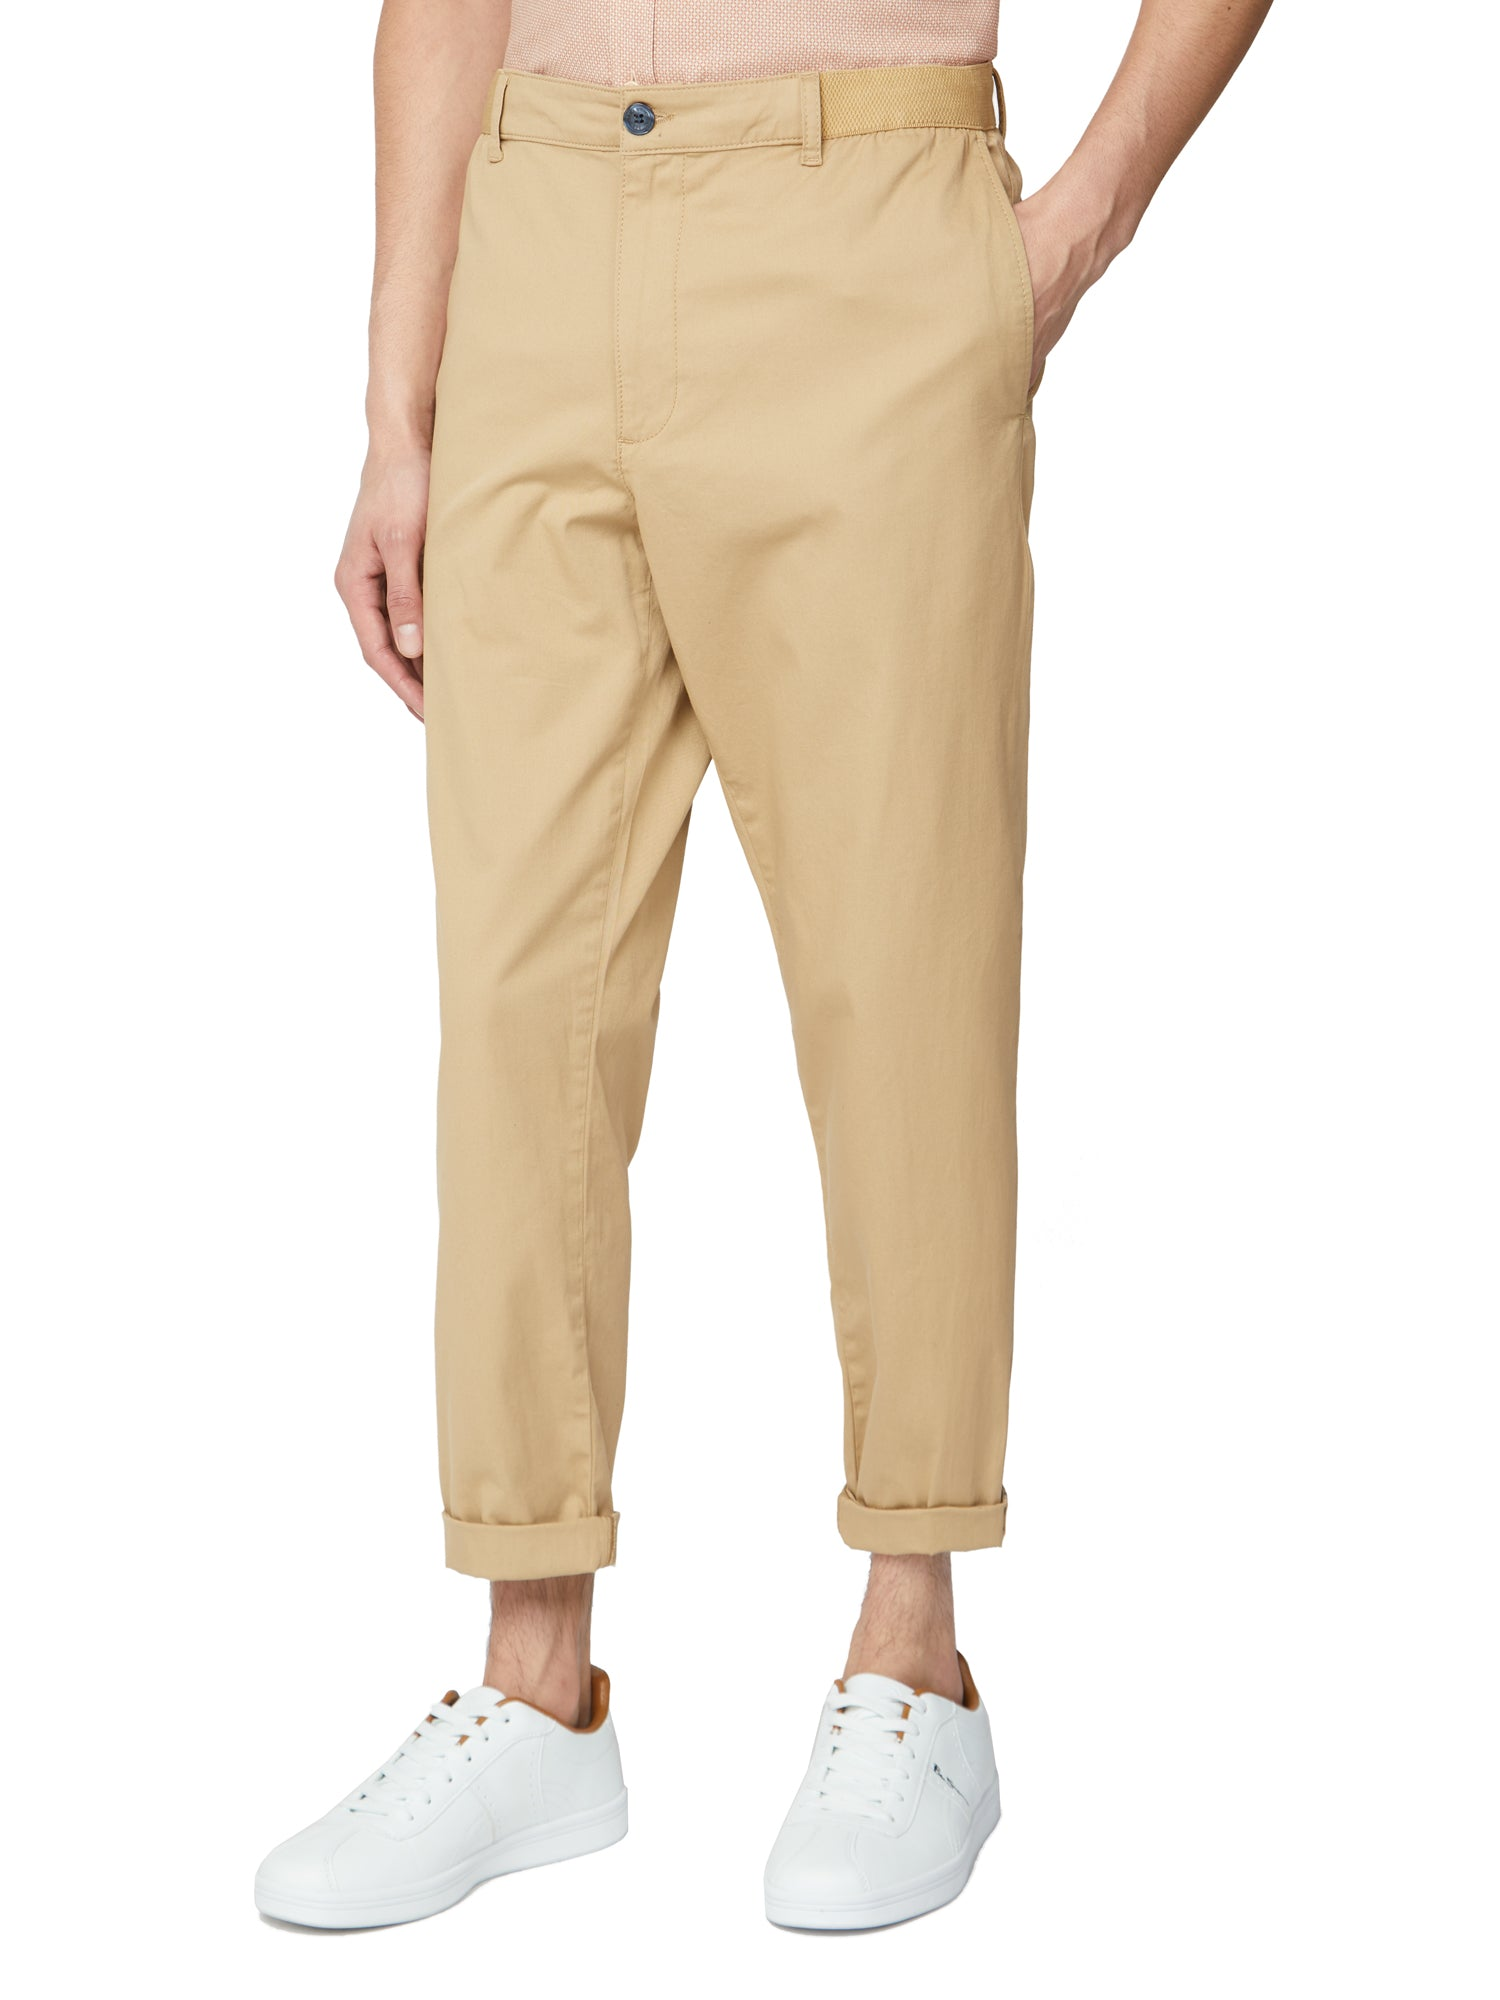 Relaxed Trouser - Sand